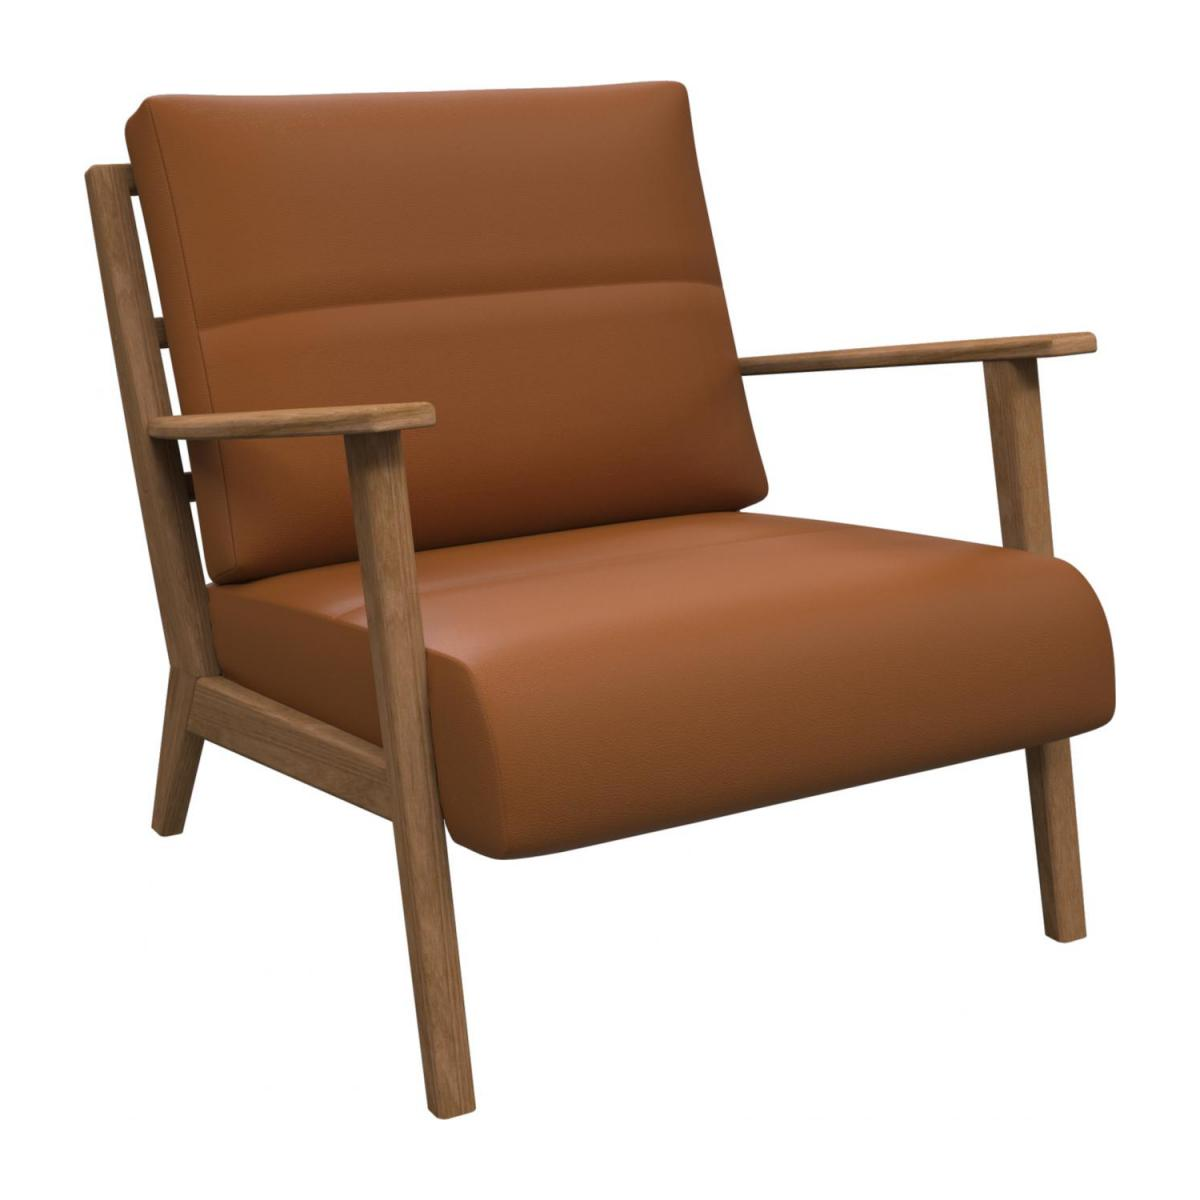 Armchair in Savoy semi-aniline leather, cognac n°1